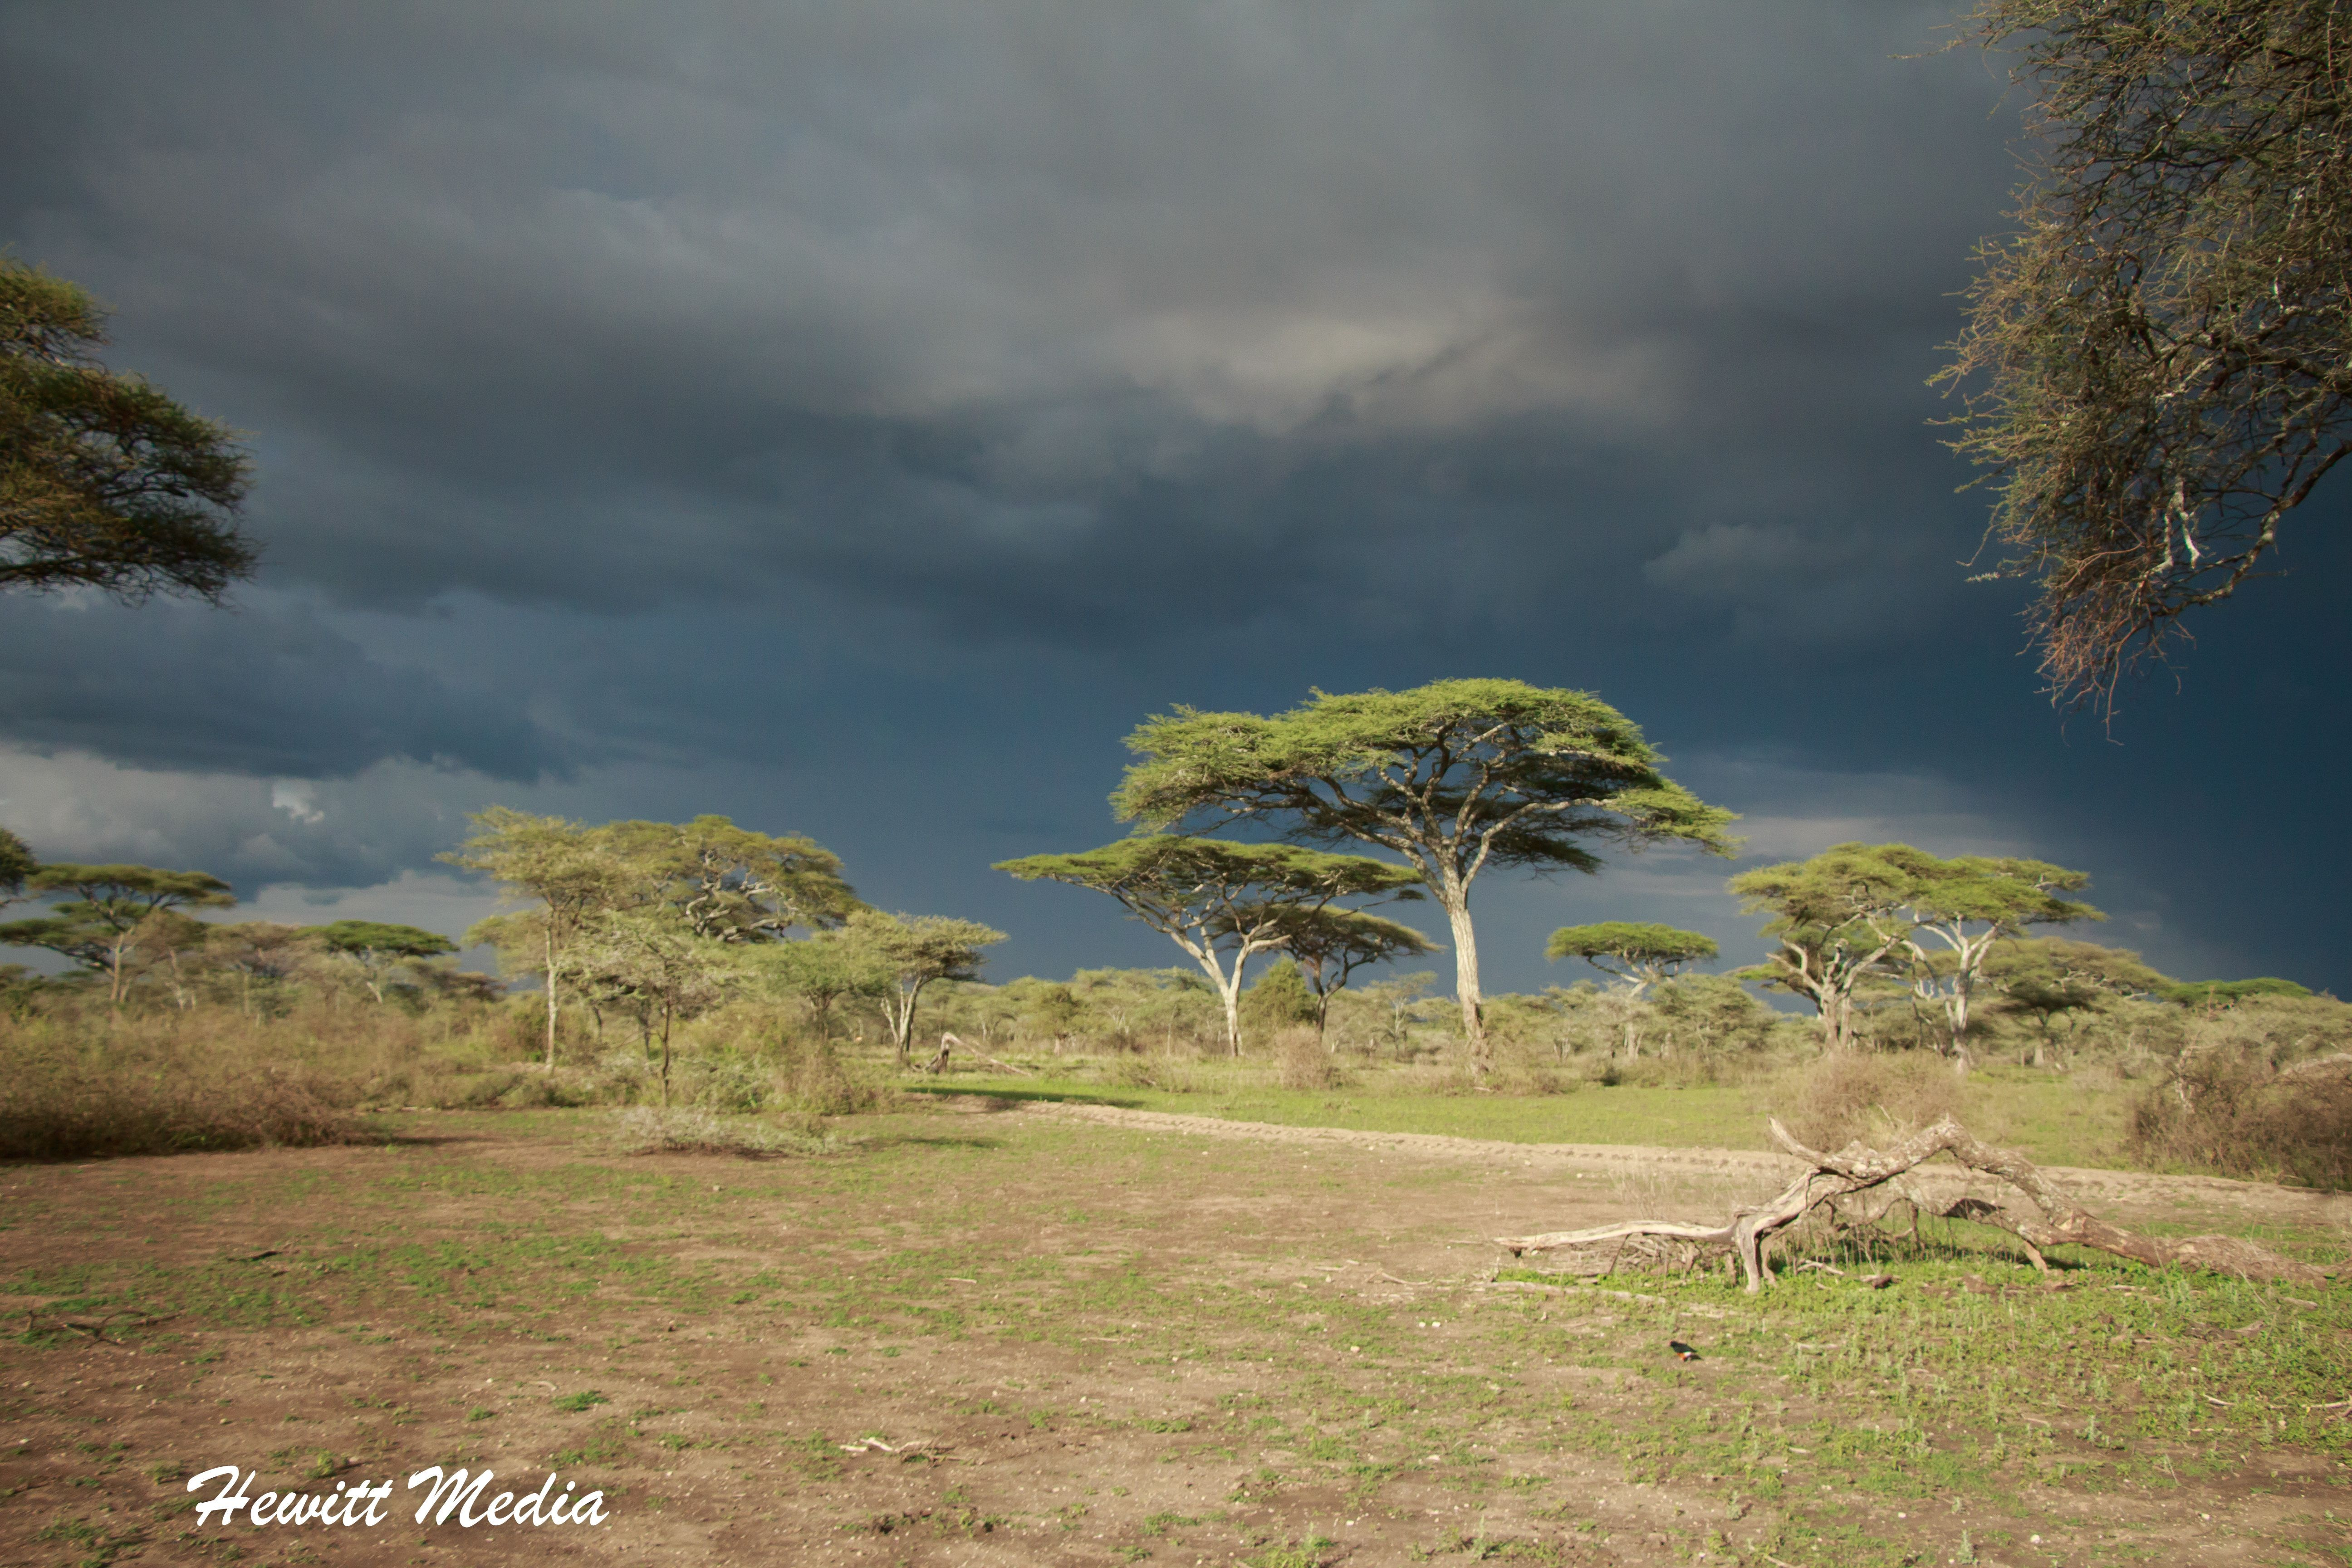 Storm In The Serengeti A Storm Rolls Into The Serengeti National Park In Tanzania It Is Remarkable How Alive Everyt Travel Photos Travel Photography Travel